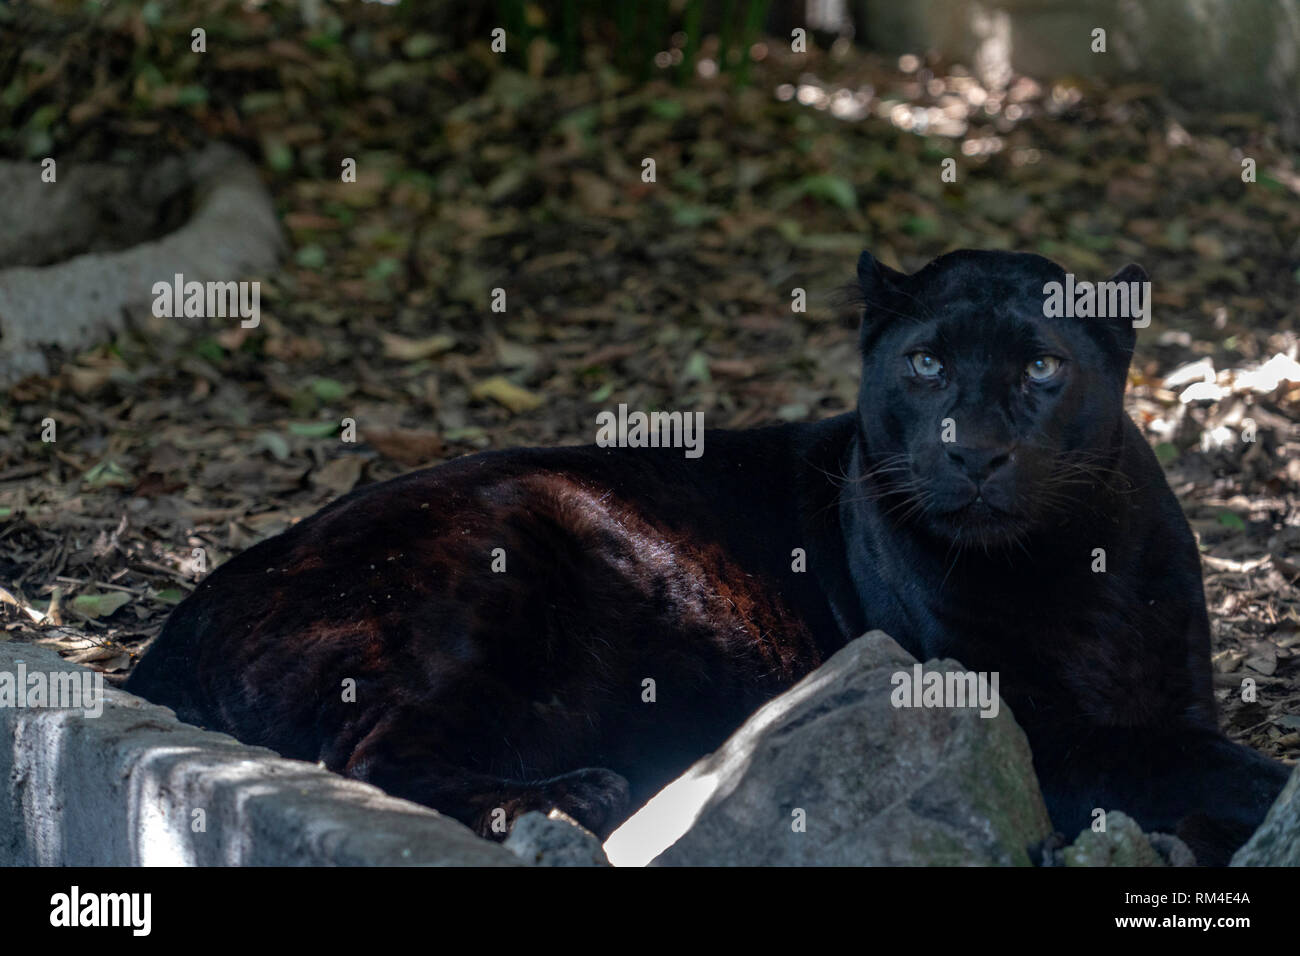 Black Jaguar Eyes High Resolution Stock Photography And Images Alamy